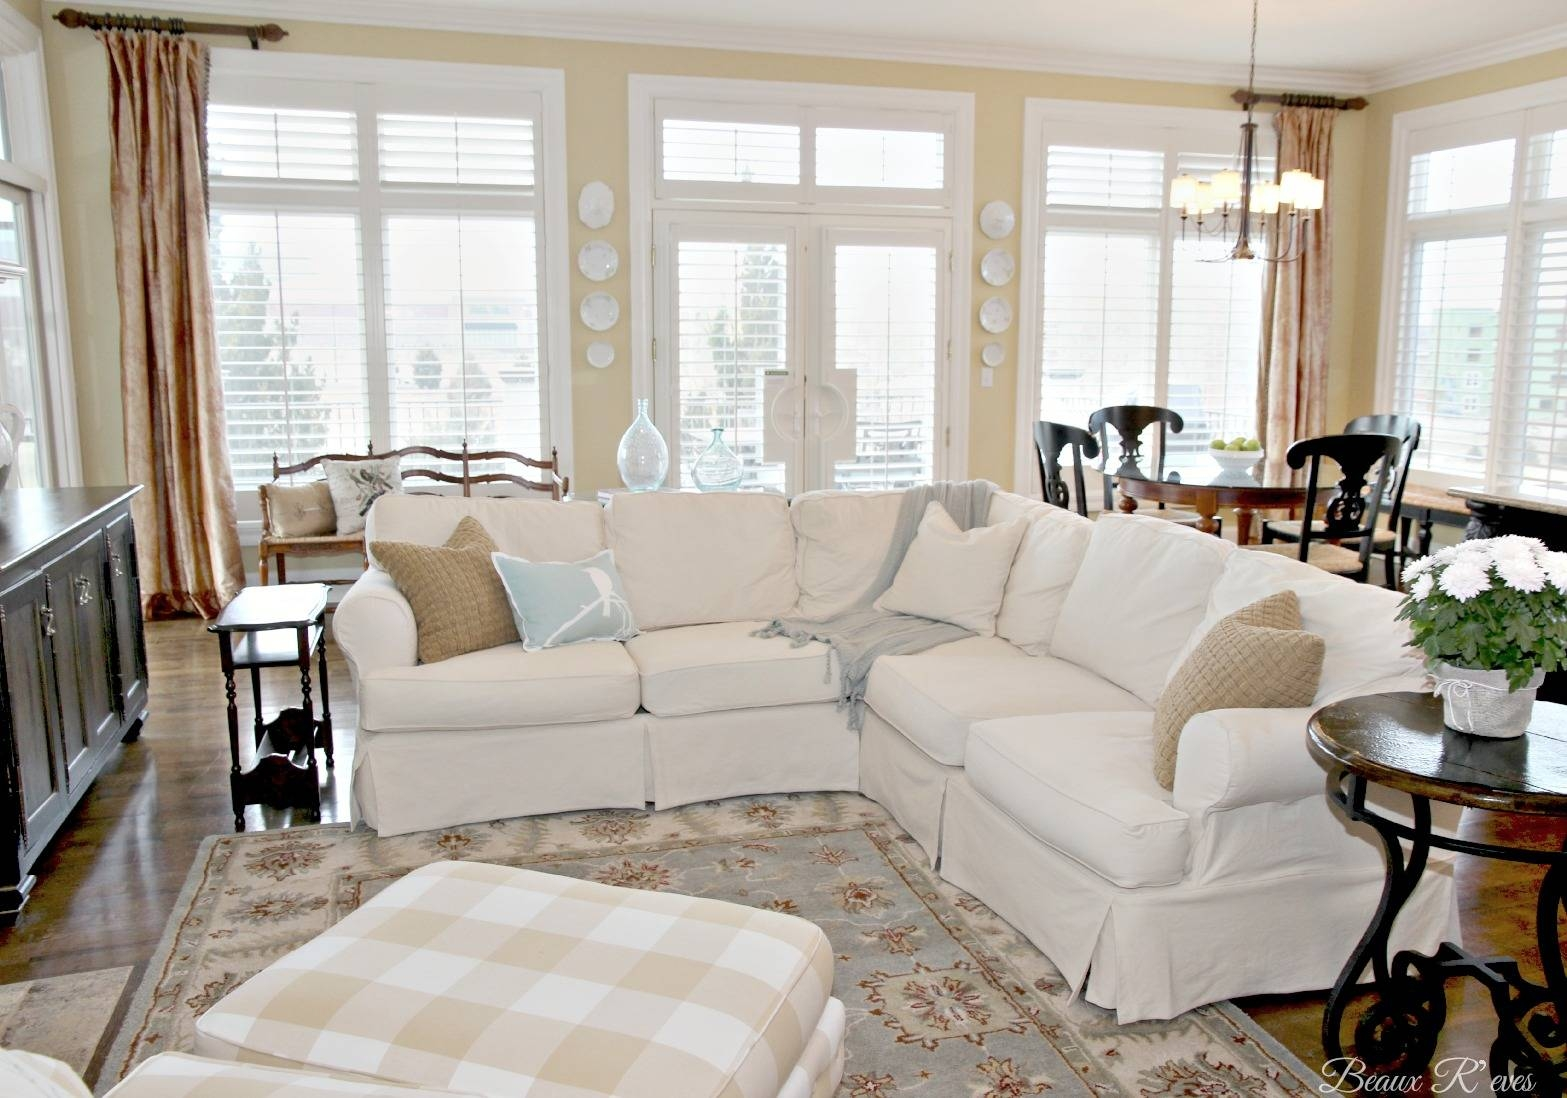 Pottery Barn Sofas. Pottery Barn Sofa S L1000 3D. Dylan Sofa within Pottery Barn Pearce Sectional Sofas (Image 11 of 15)